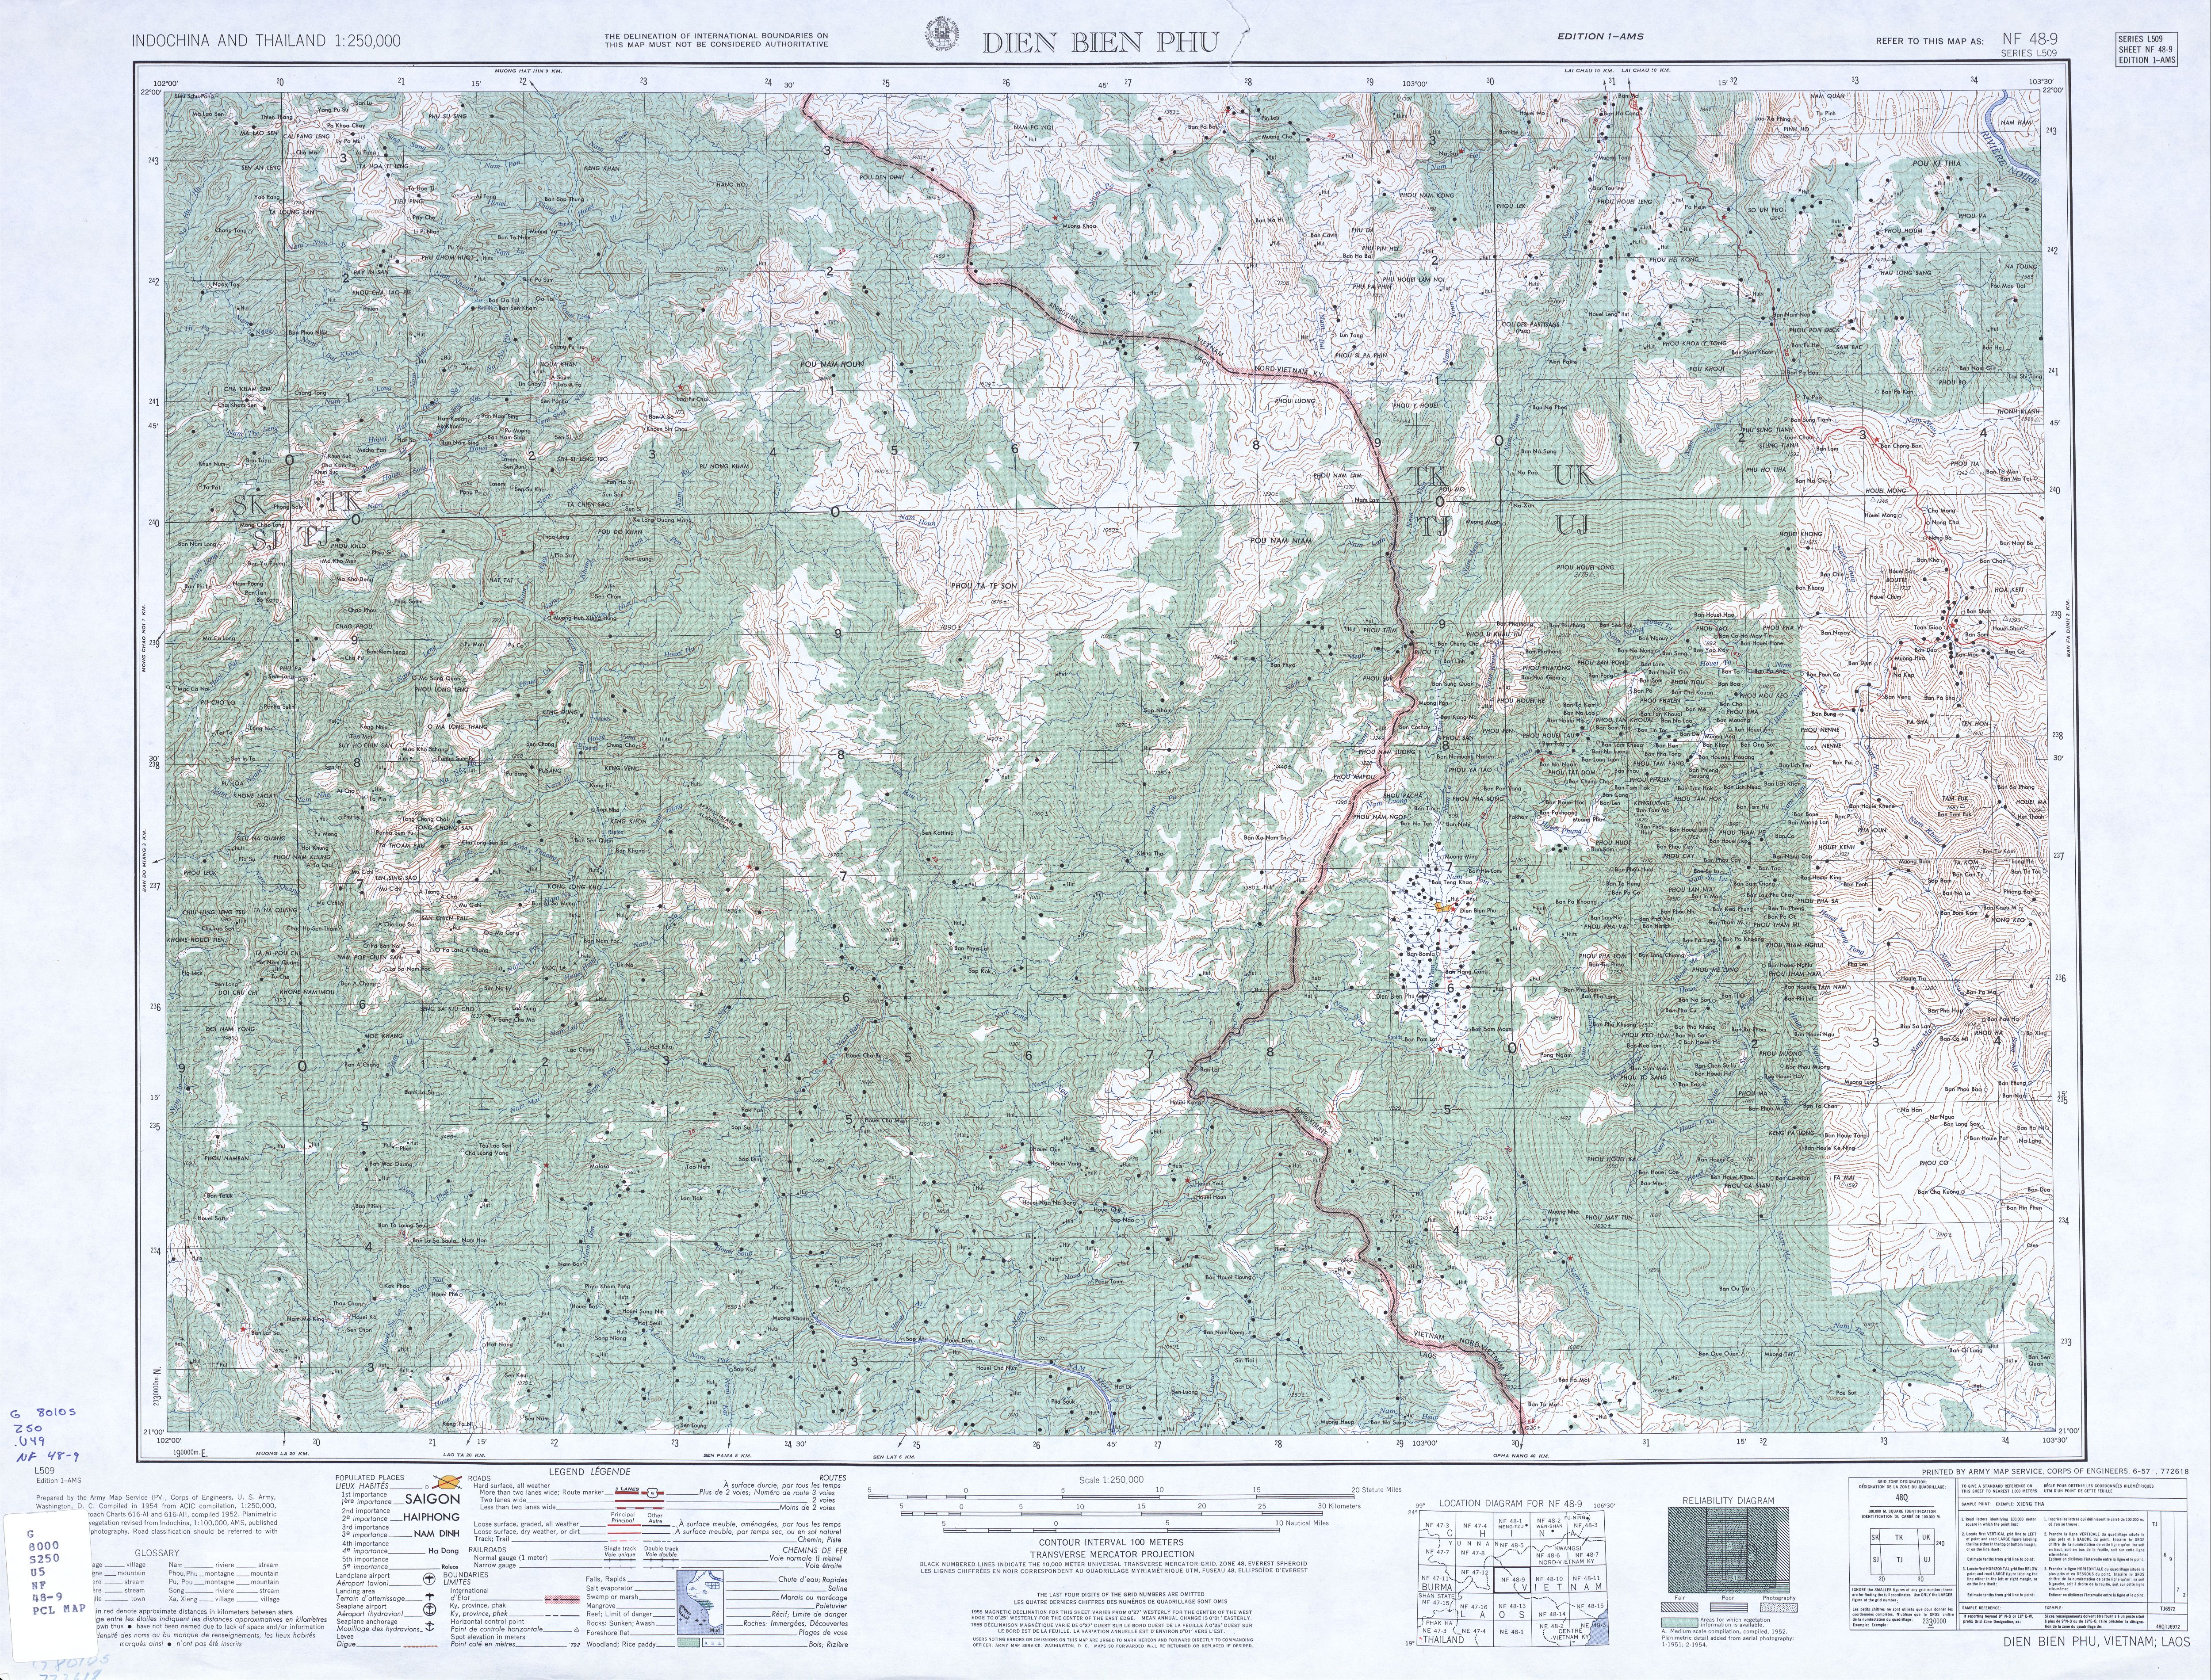 Dien Bien Phu Vietnam Map.Indochina And Thailand Ams Topographic Maps Perry Castaneda Map